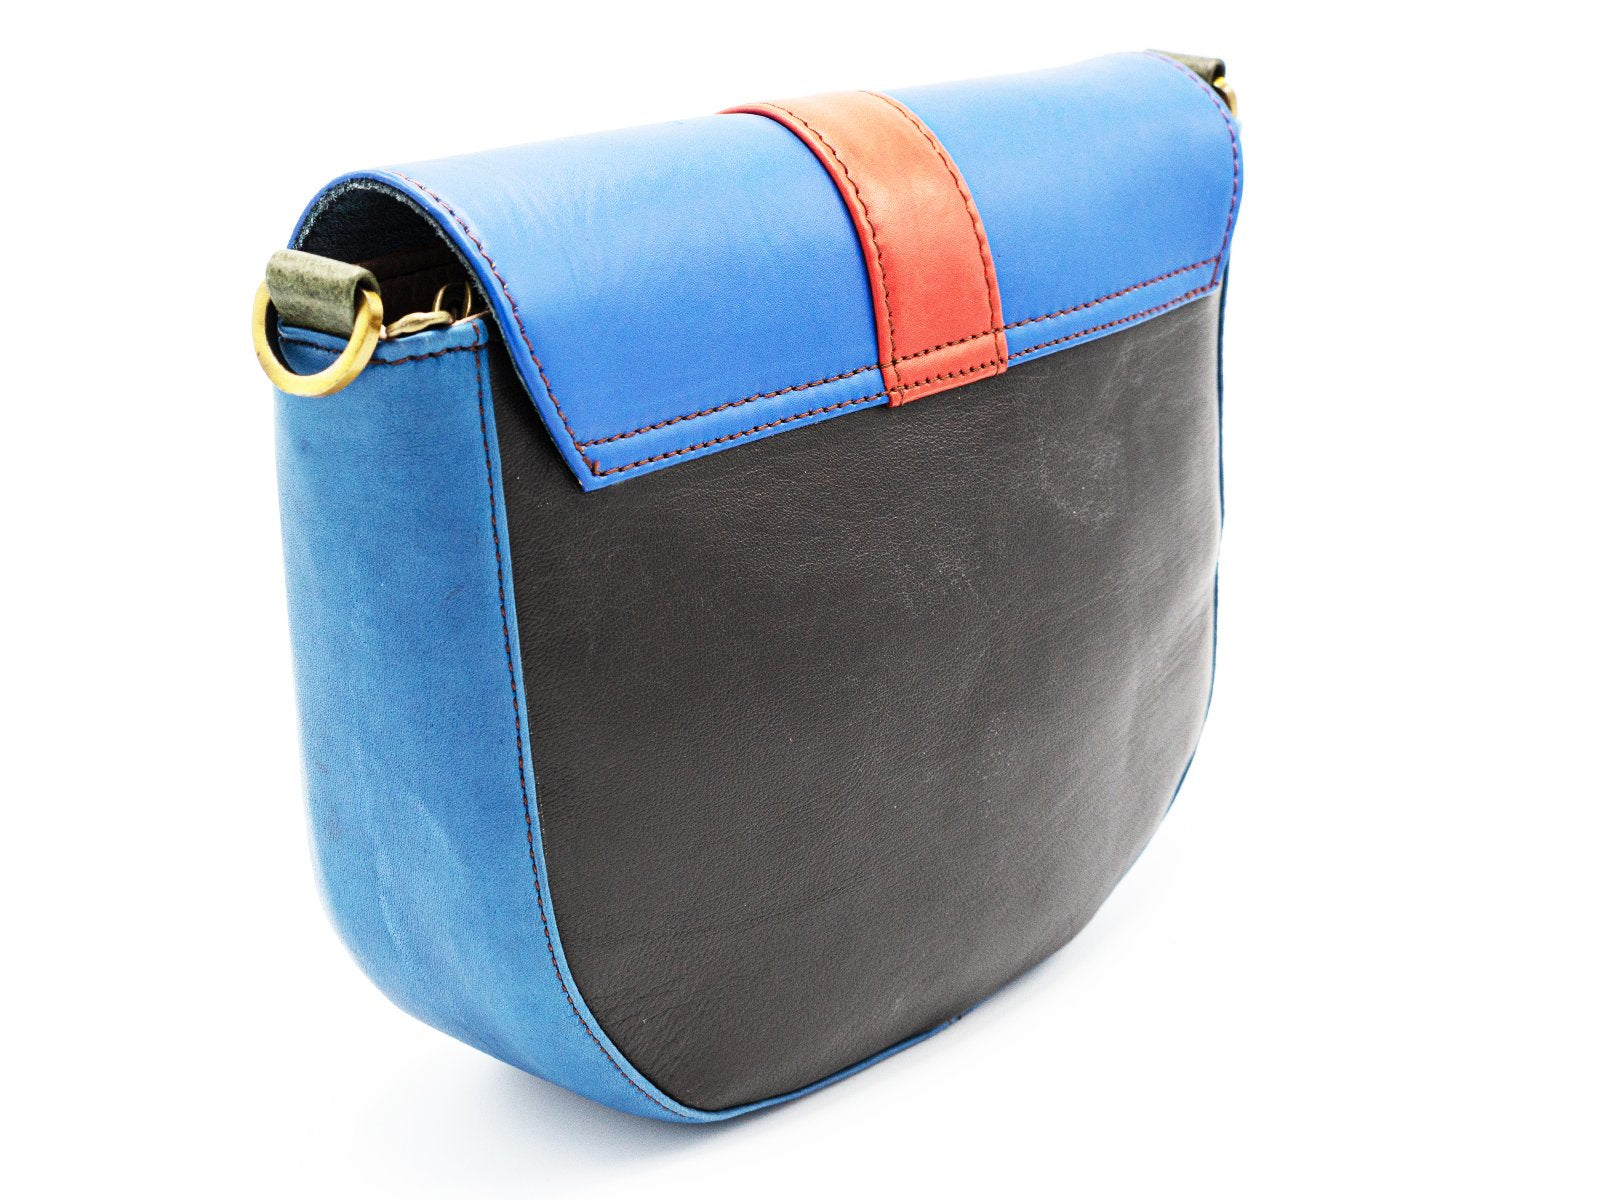 Unique Recycled Leather Clutch|  Orange Handbag One of a Kind